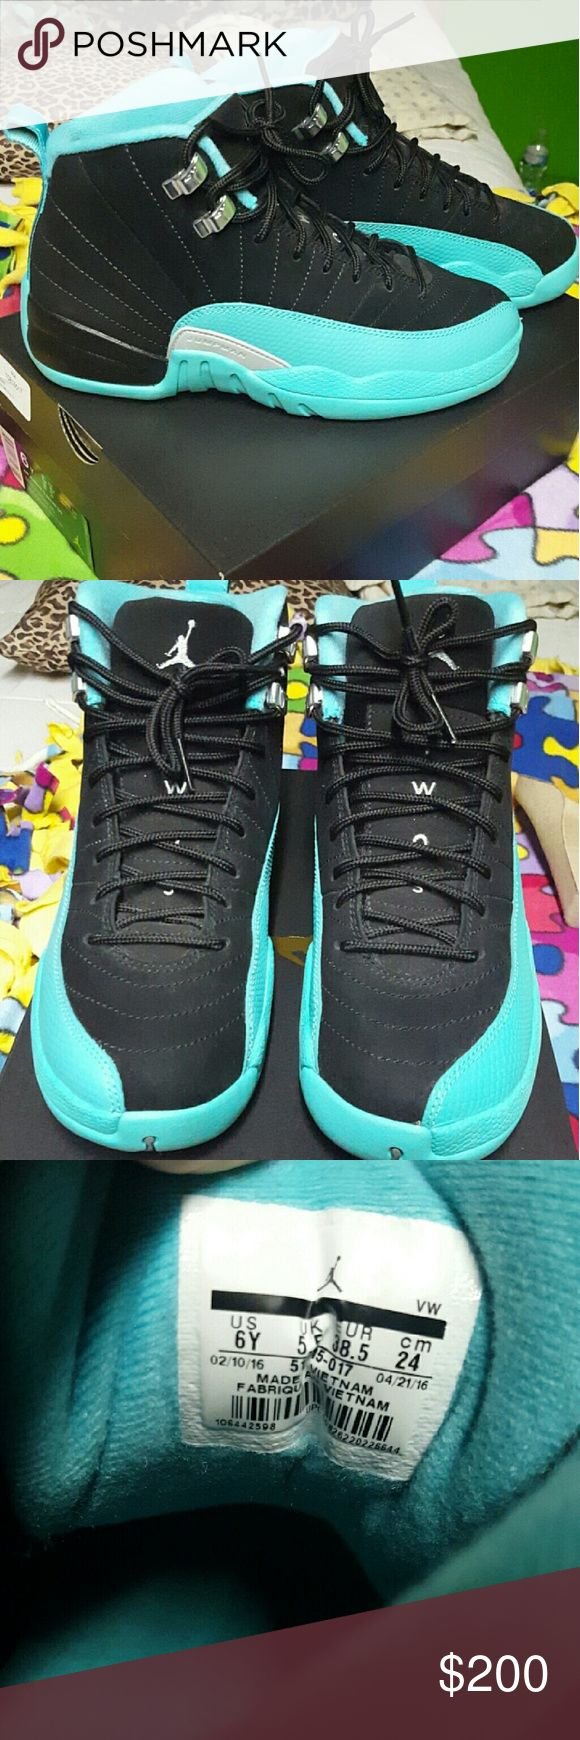 Jordan retro 12s Hyper Jade Size 6 in girls but they fit big. Look brand new, literally wore then 3 times. Jordan Shoes Sneakers